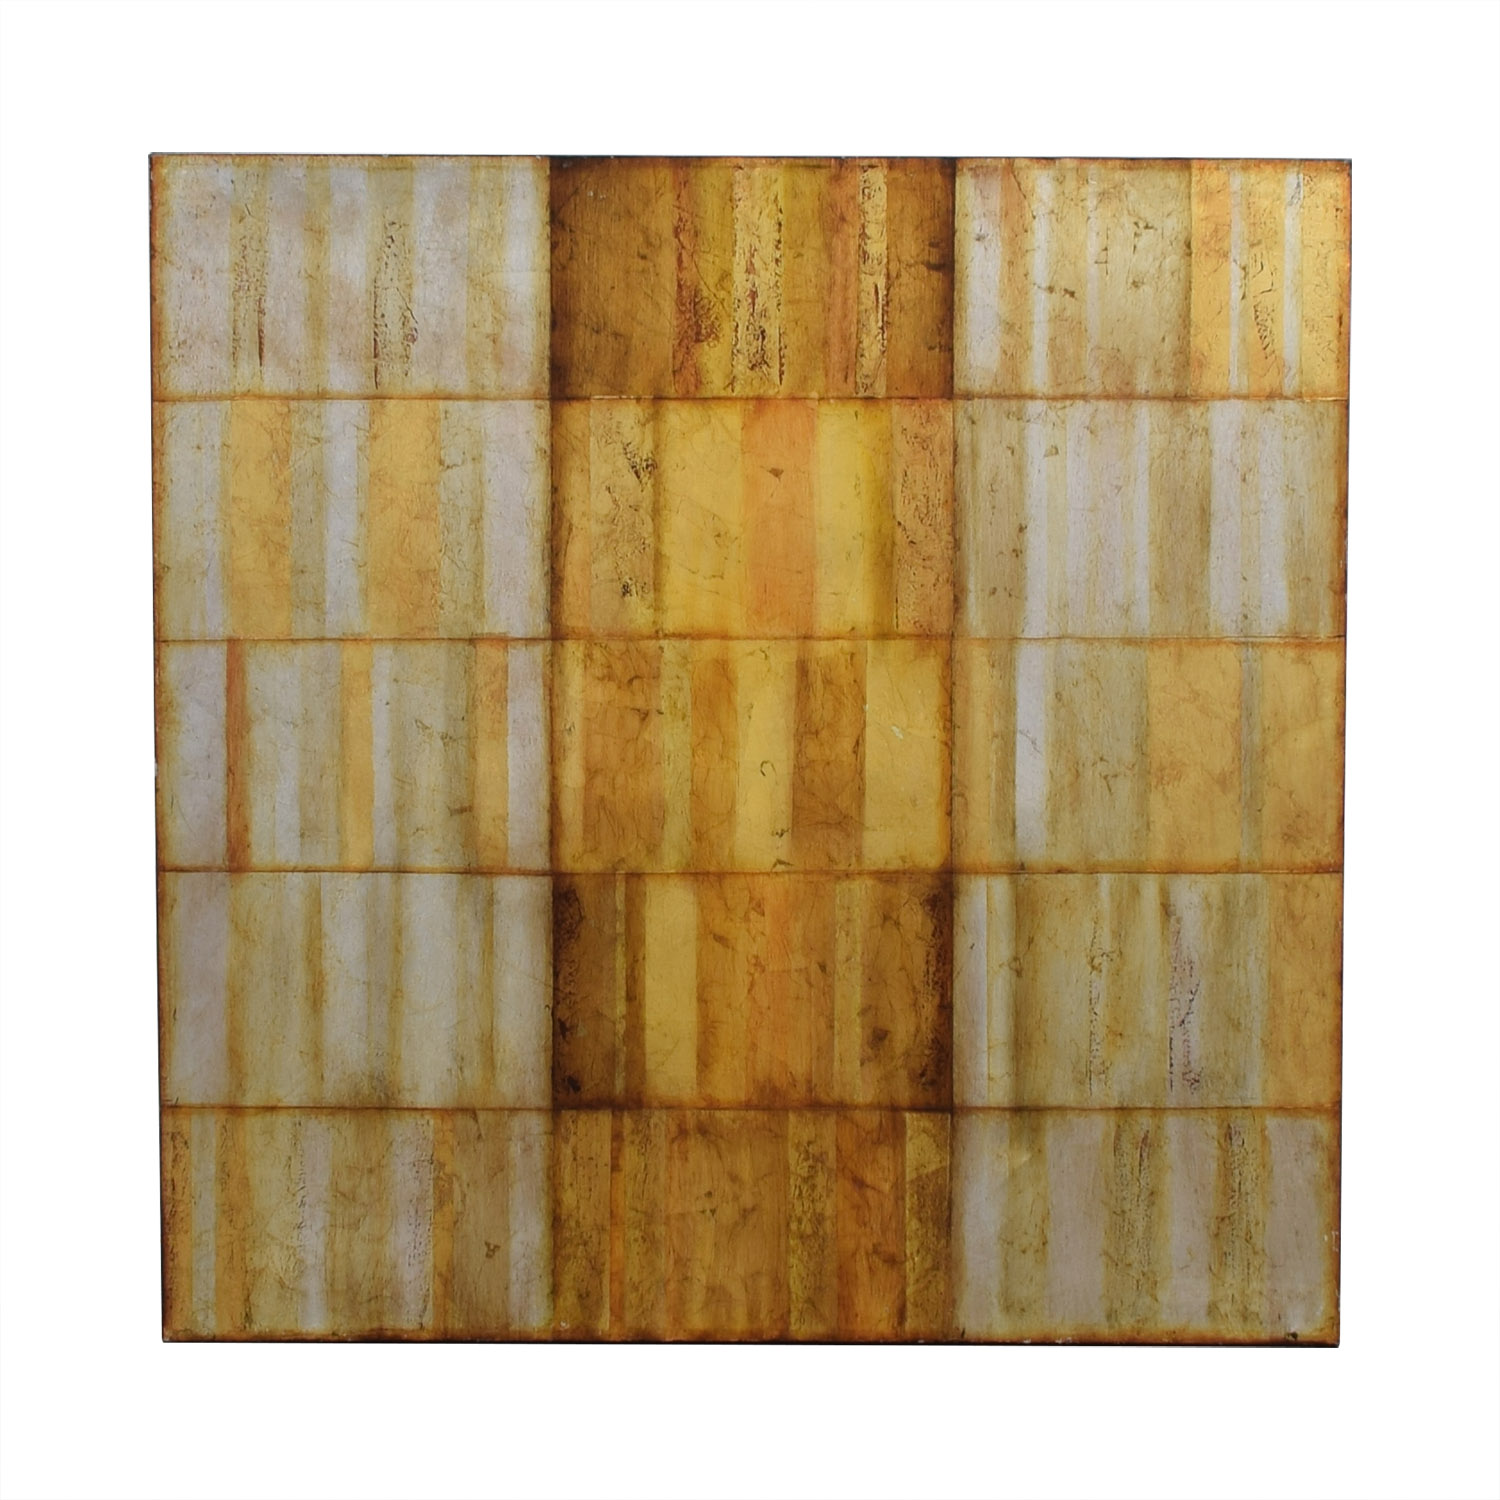 Pier 1 Pier 1 Gold Geometric Painting price